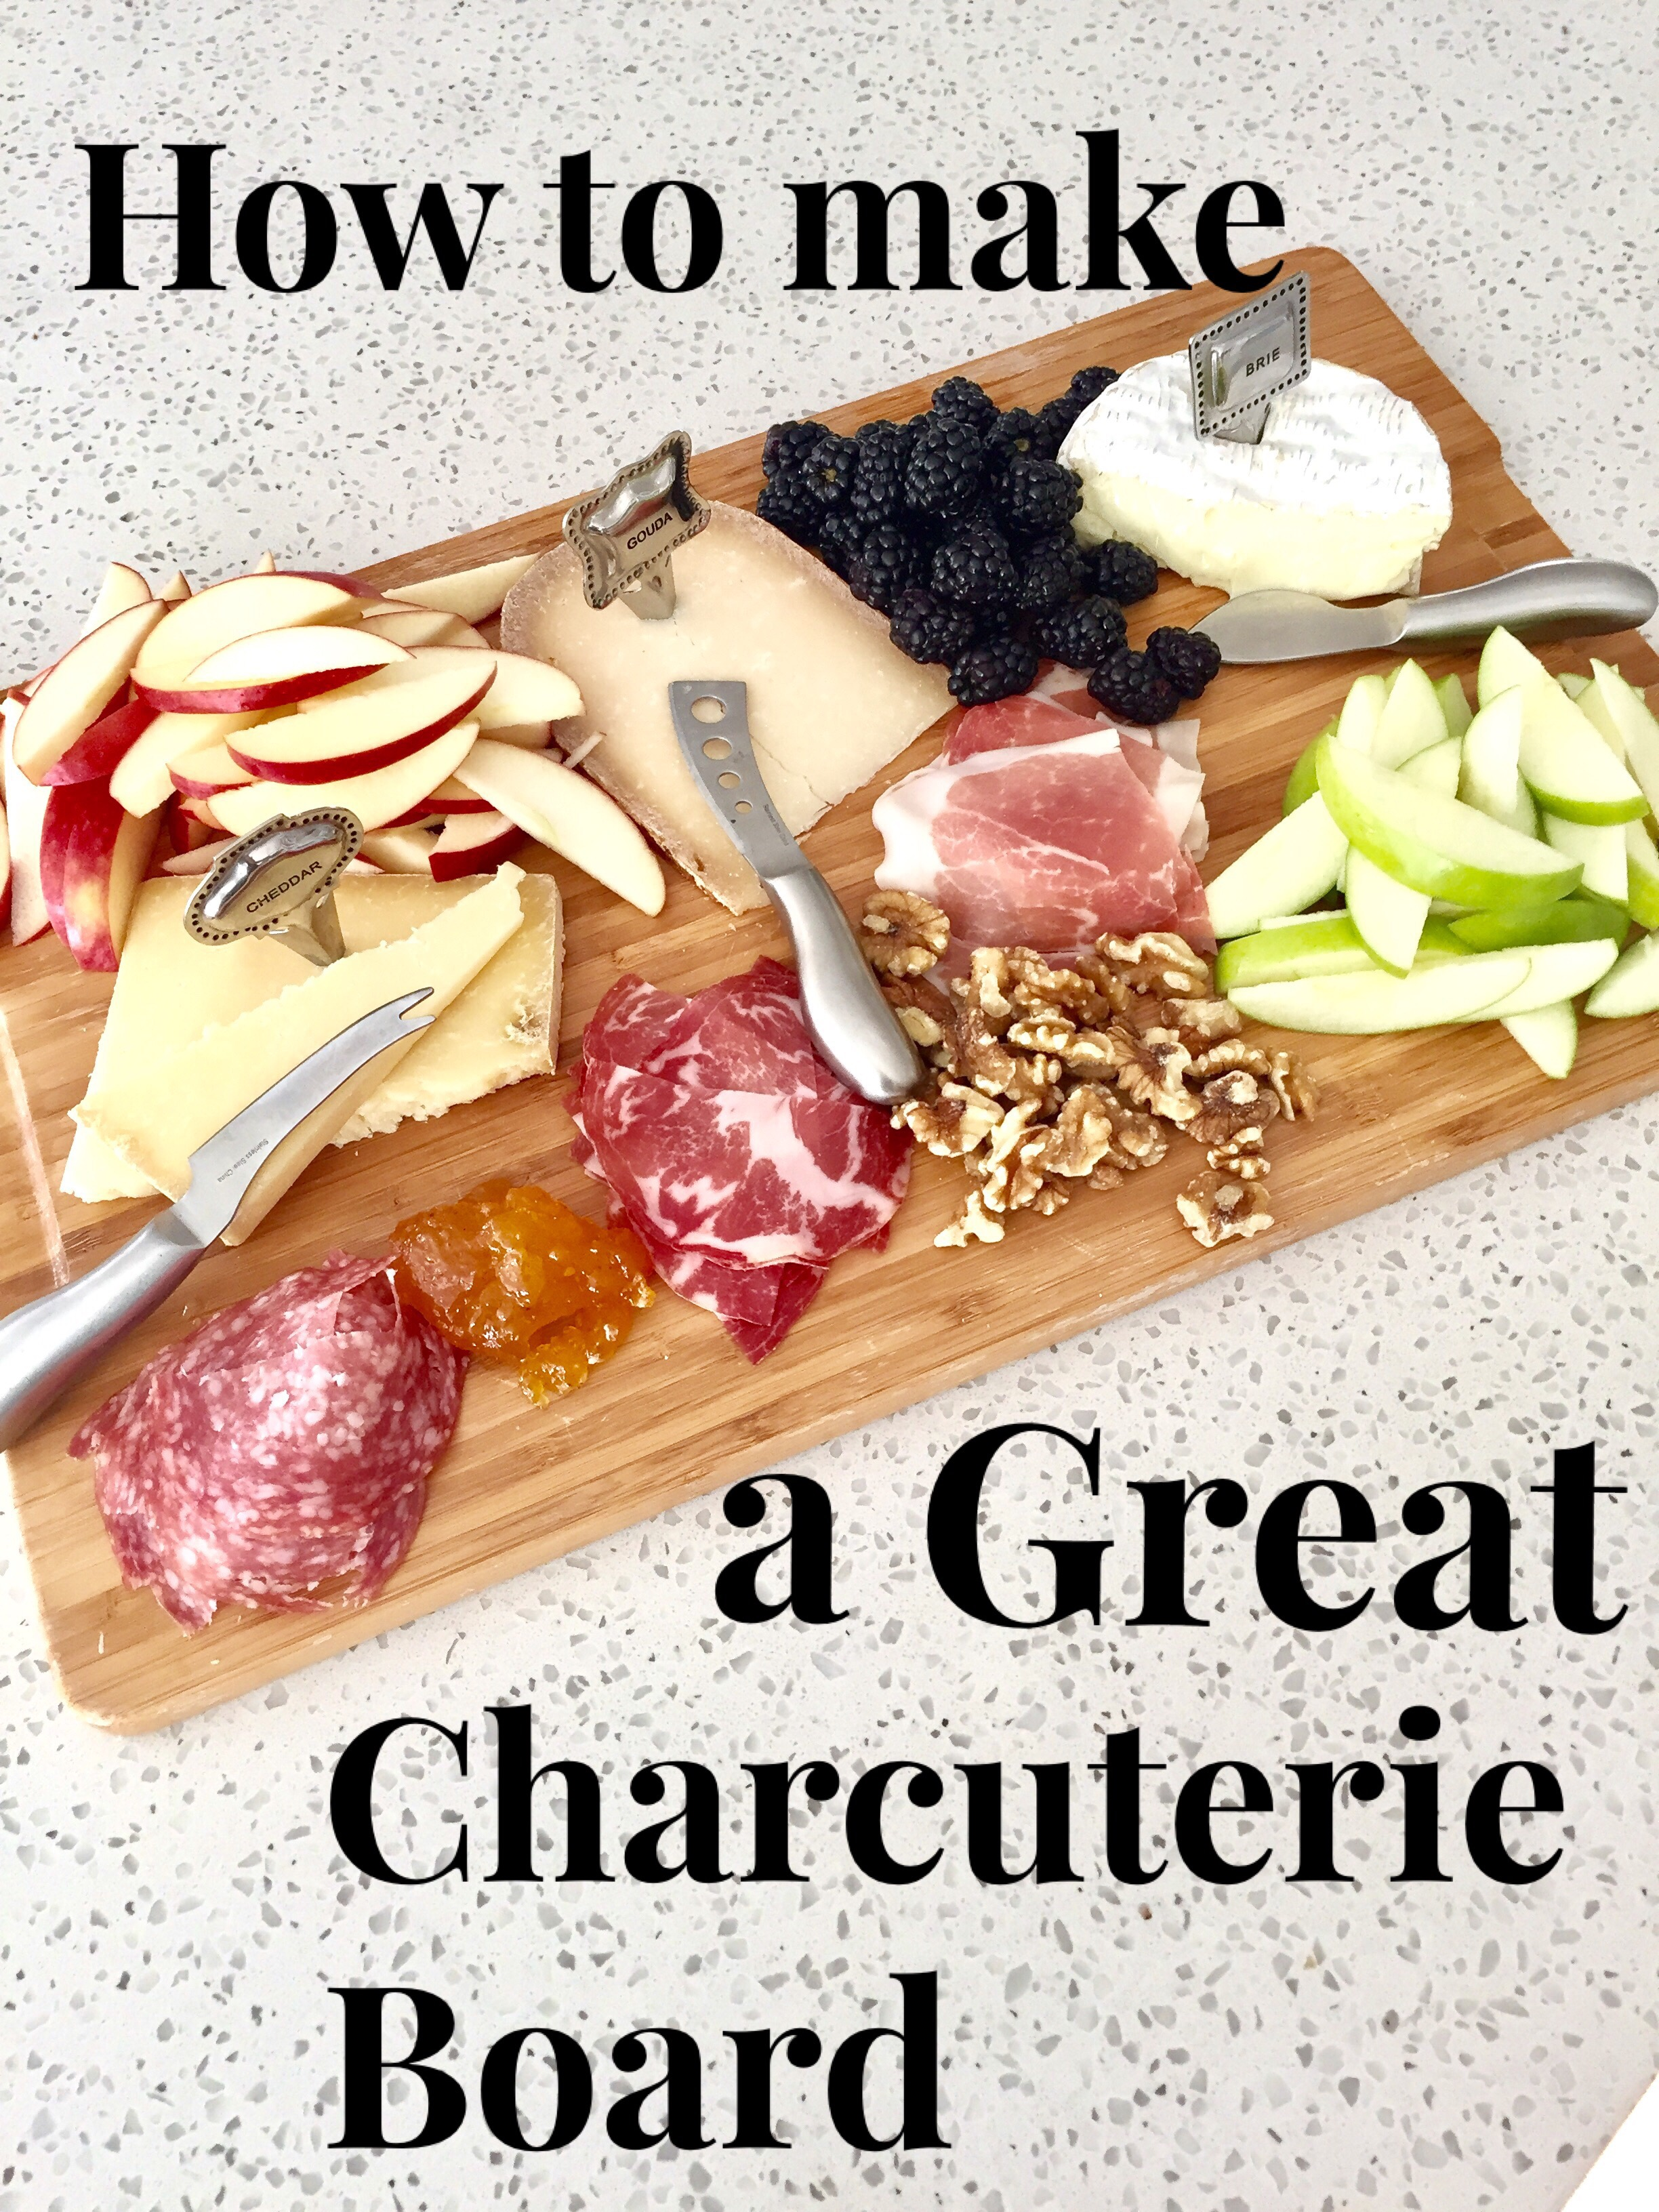 How to Make a Great Charcuterie Board